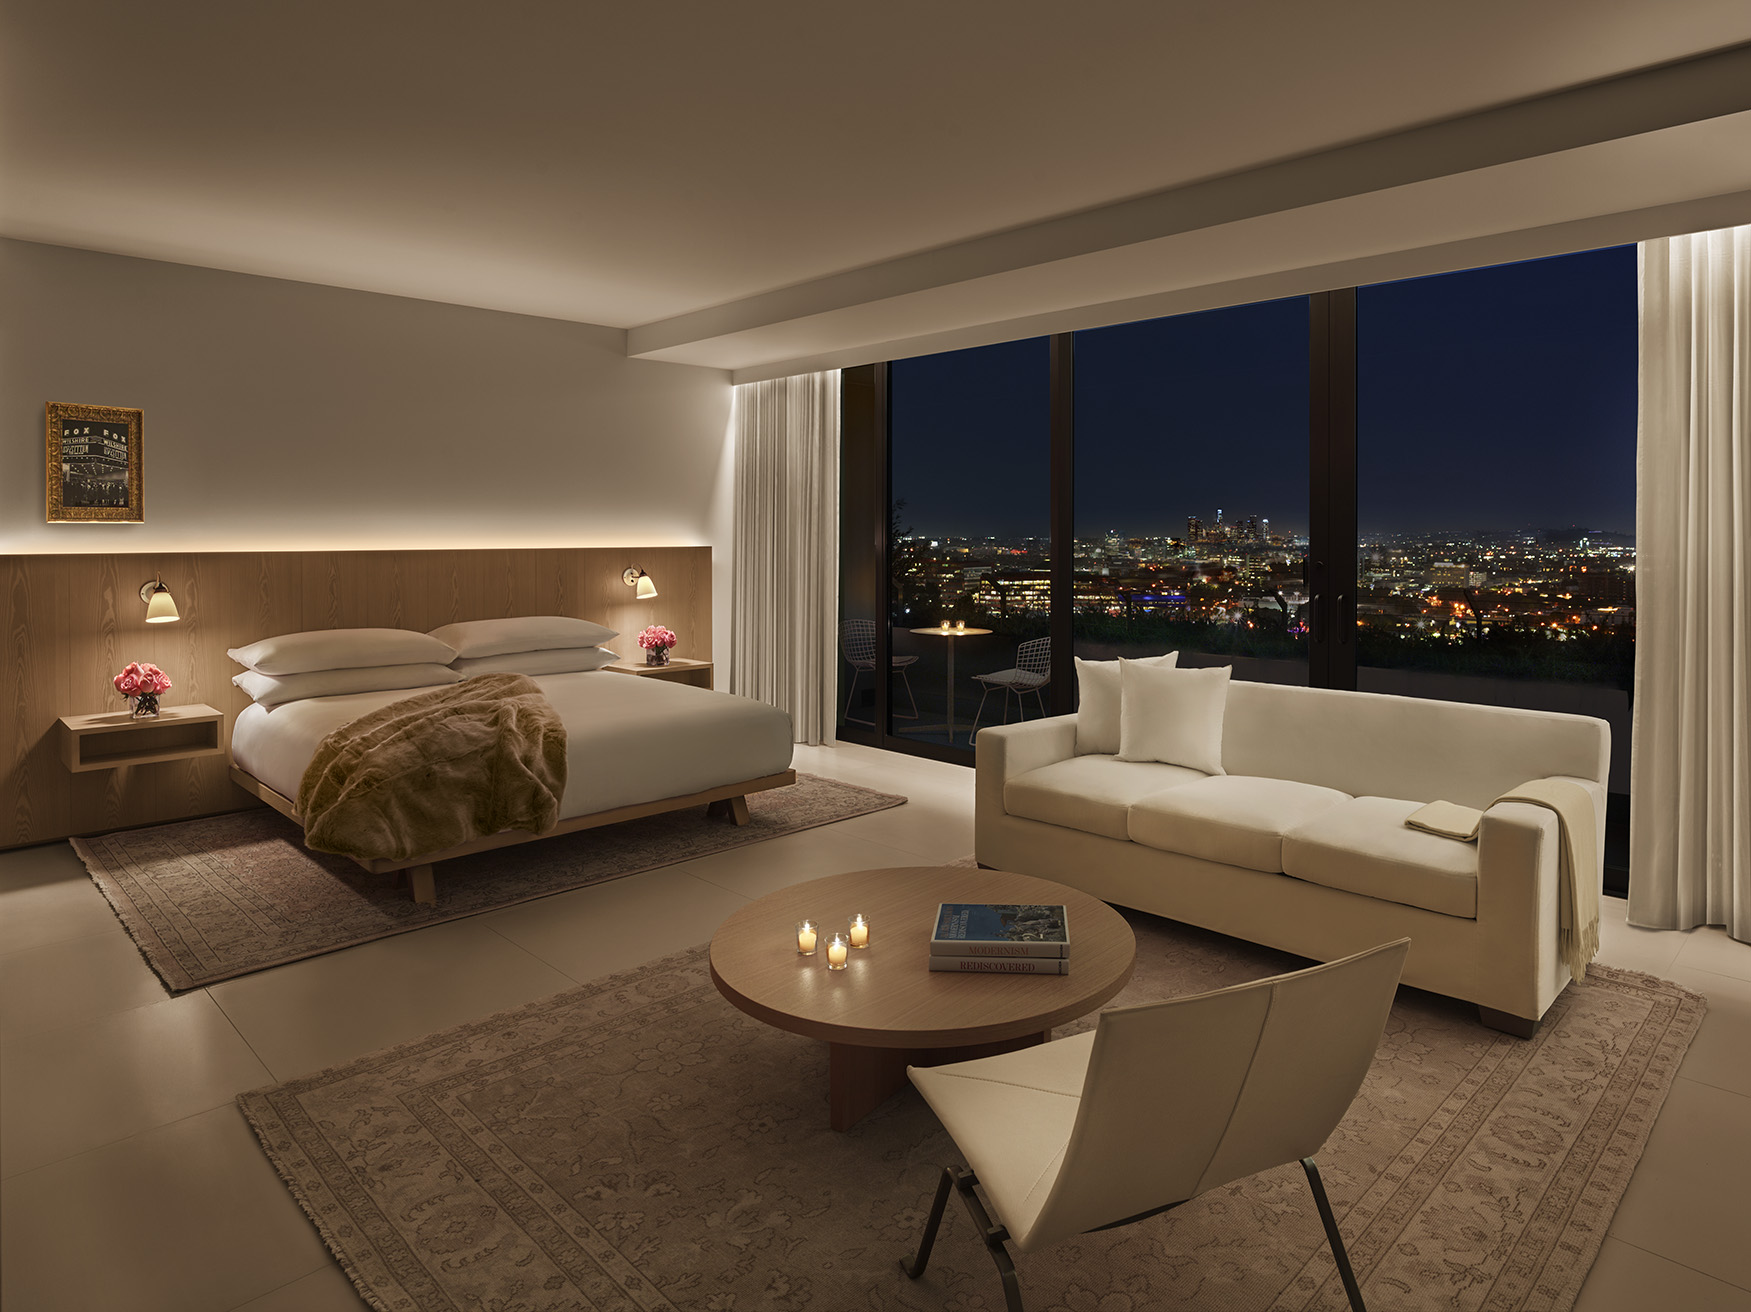 West Hollywood Edition Luxury Hotel Marks Return For Studio 54 Cofounder Ian Schrager Fortune